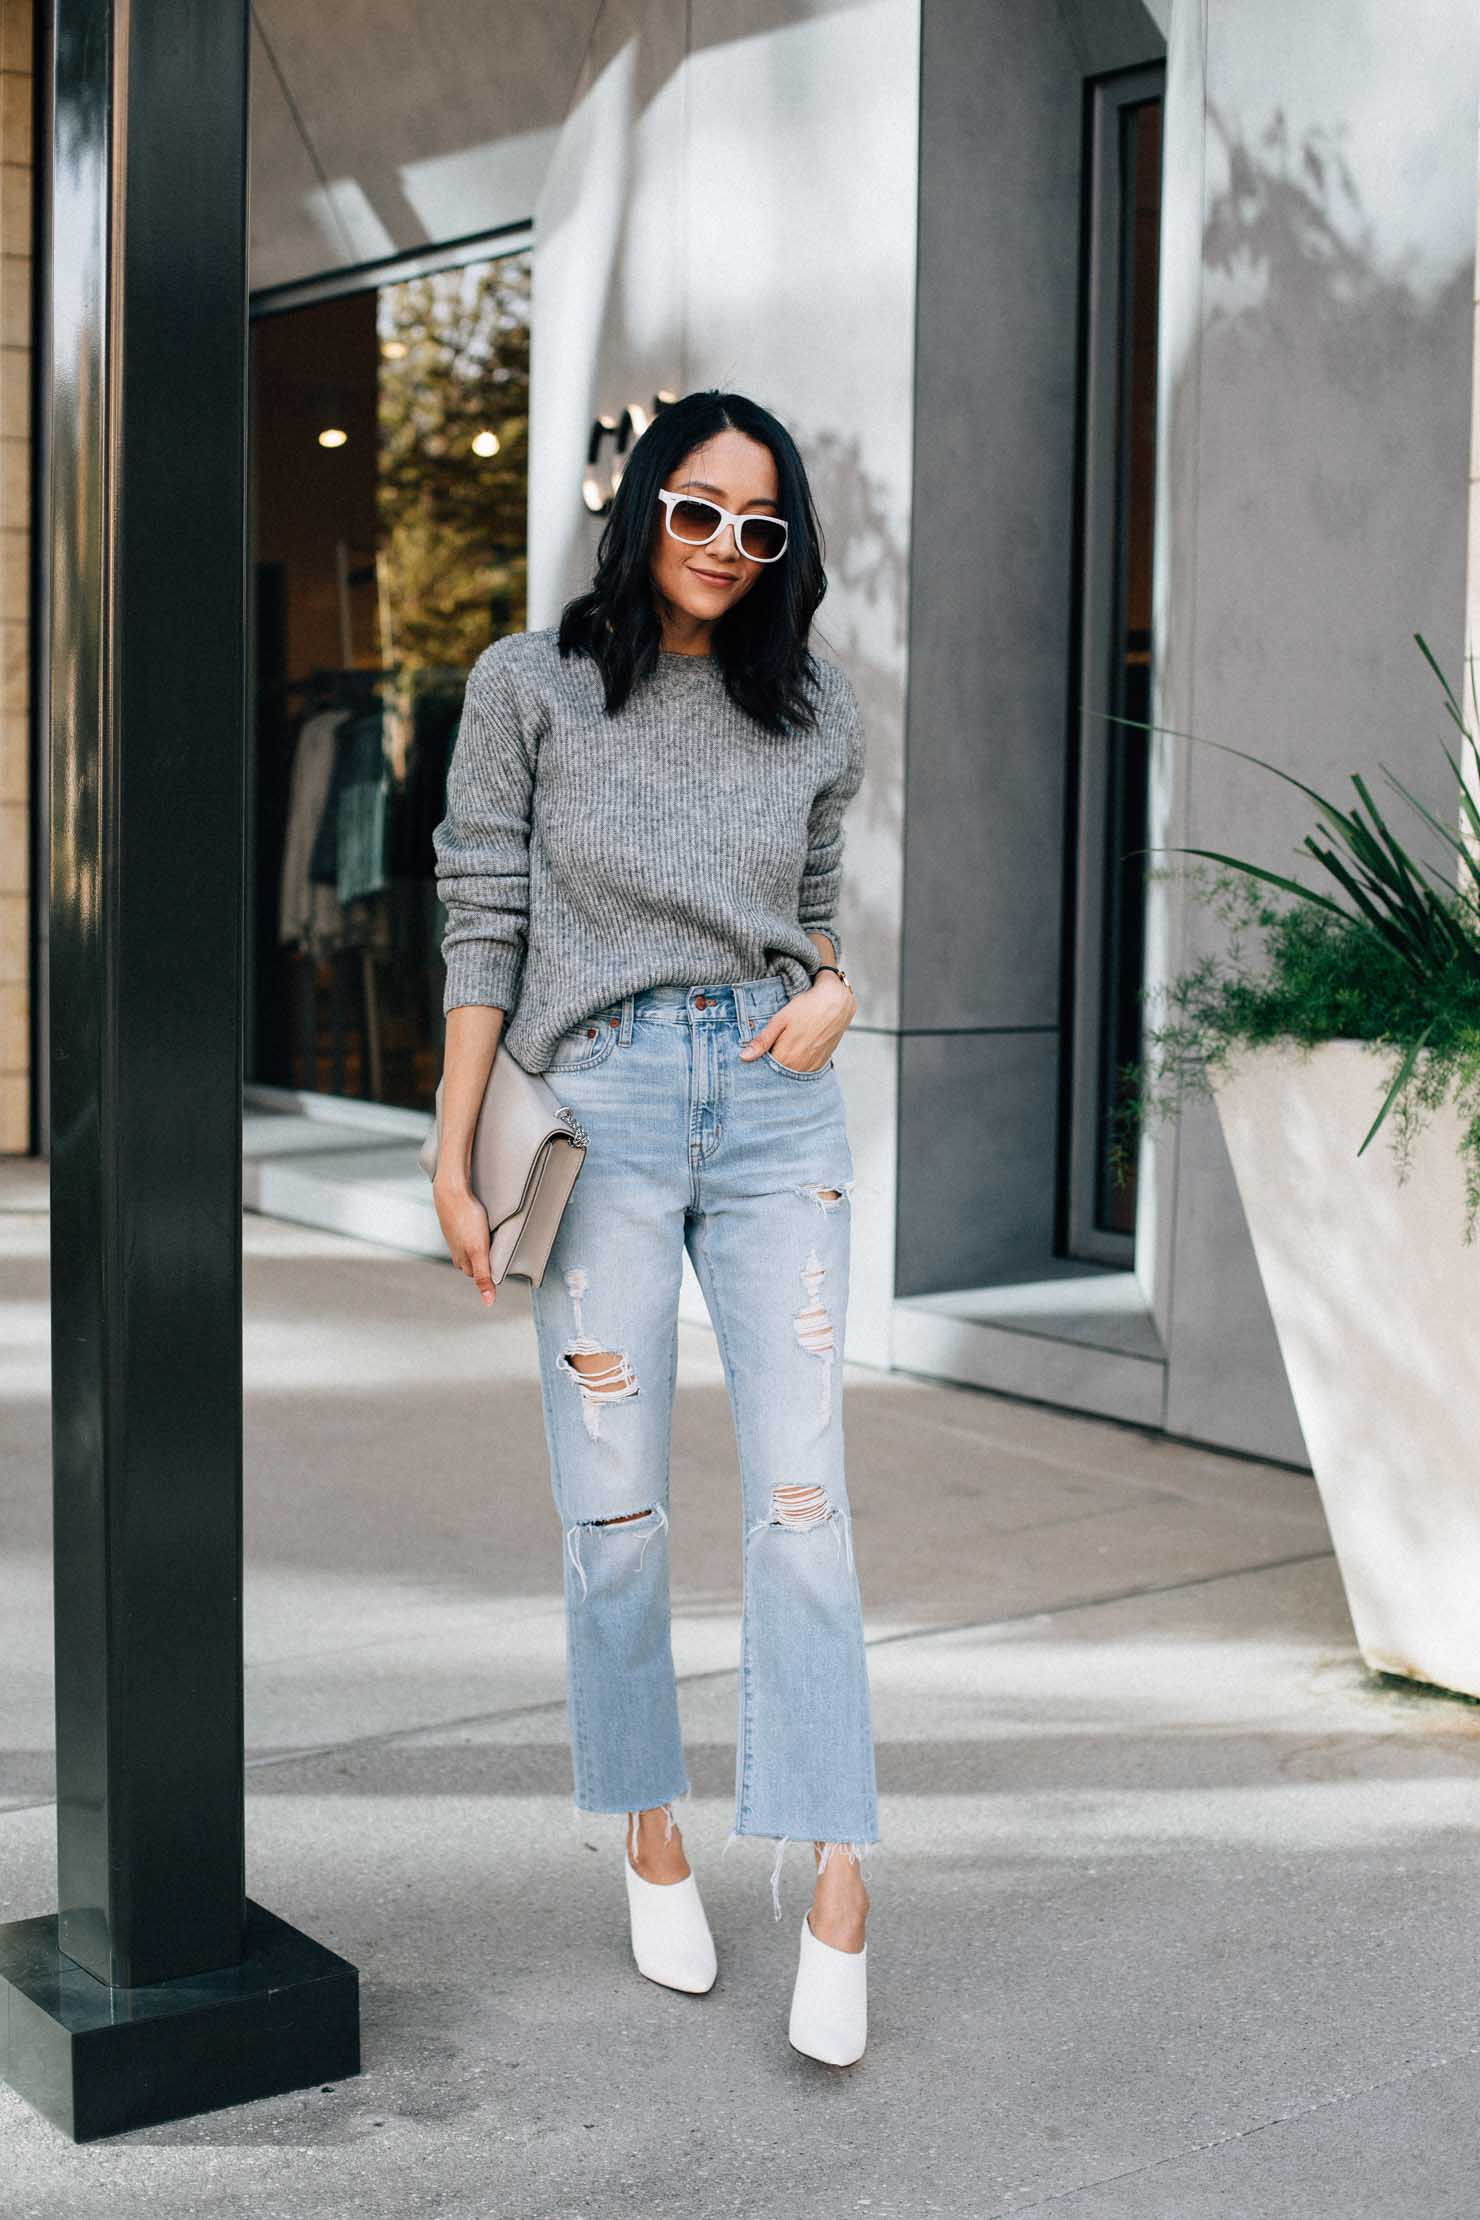 Lilly Beltran of Daily Craving in a casual fall outfit with ripped jeans, oversized sweater and white mules